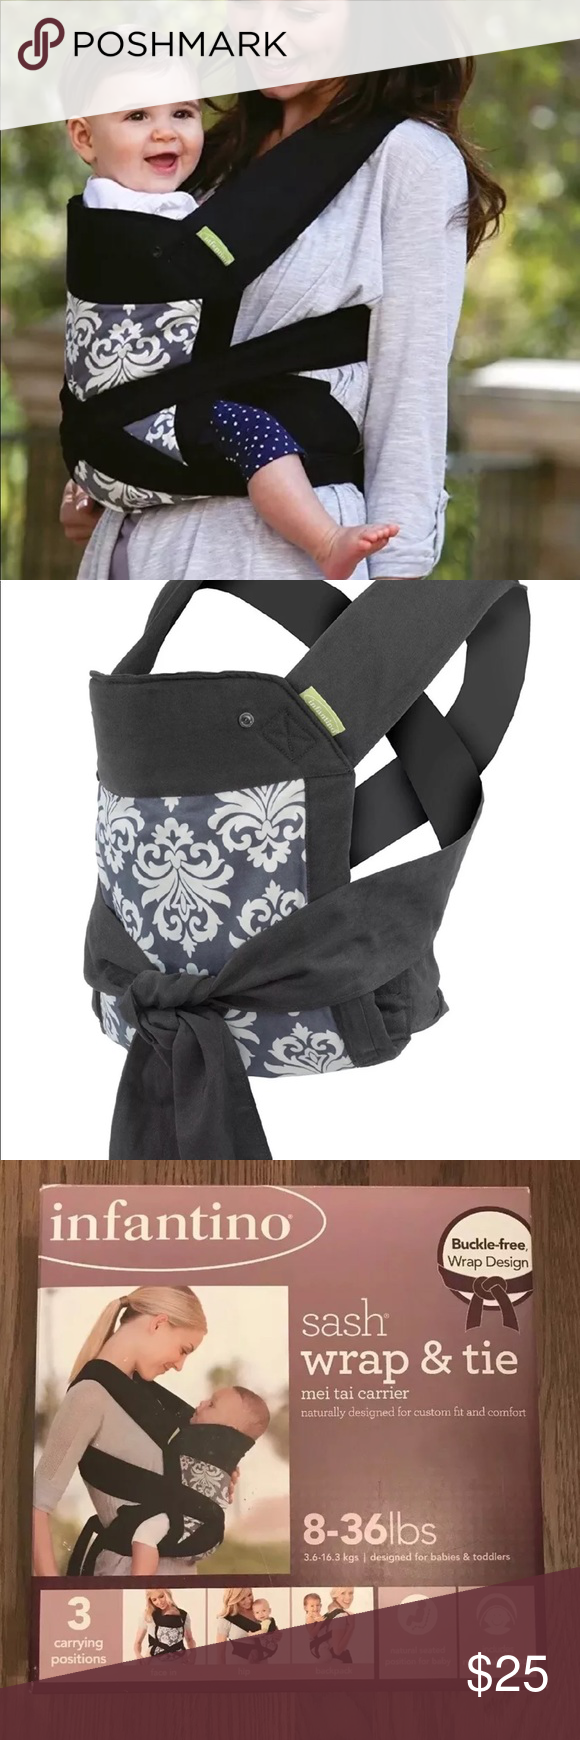 80ee7fd7d33 Infantino Baby Carrier - Sash Wrap and Tie OpenBox New. ⚠️Open Box⚠️Never  used 18-36lbs Infantino Sash Wrap and Tie Baby Carrier The Sash is based on  ...